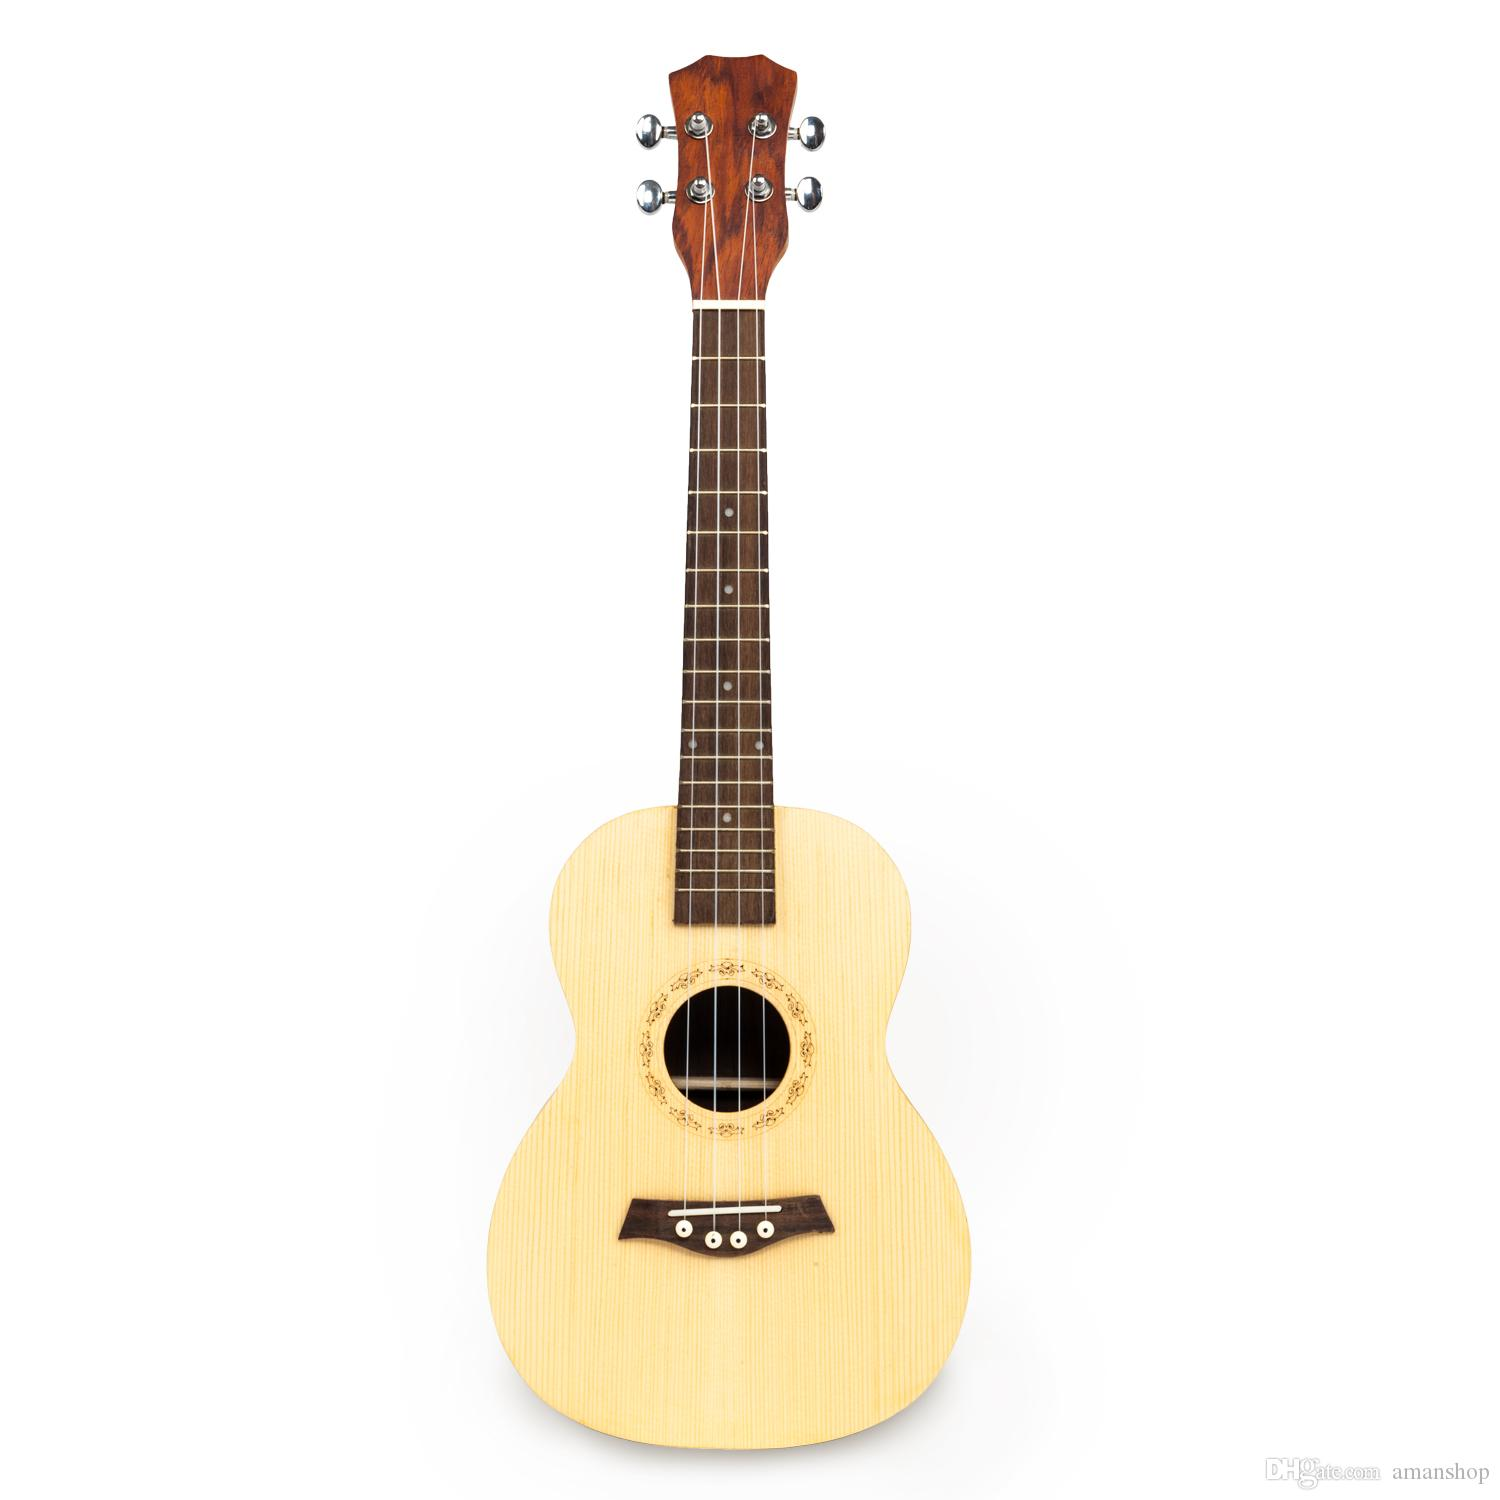 """UK601 26"""" Tenor Spruce Front-panel with Cacao Pineapple Wood Back and Side Panel Ukulele Wood Color"""